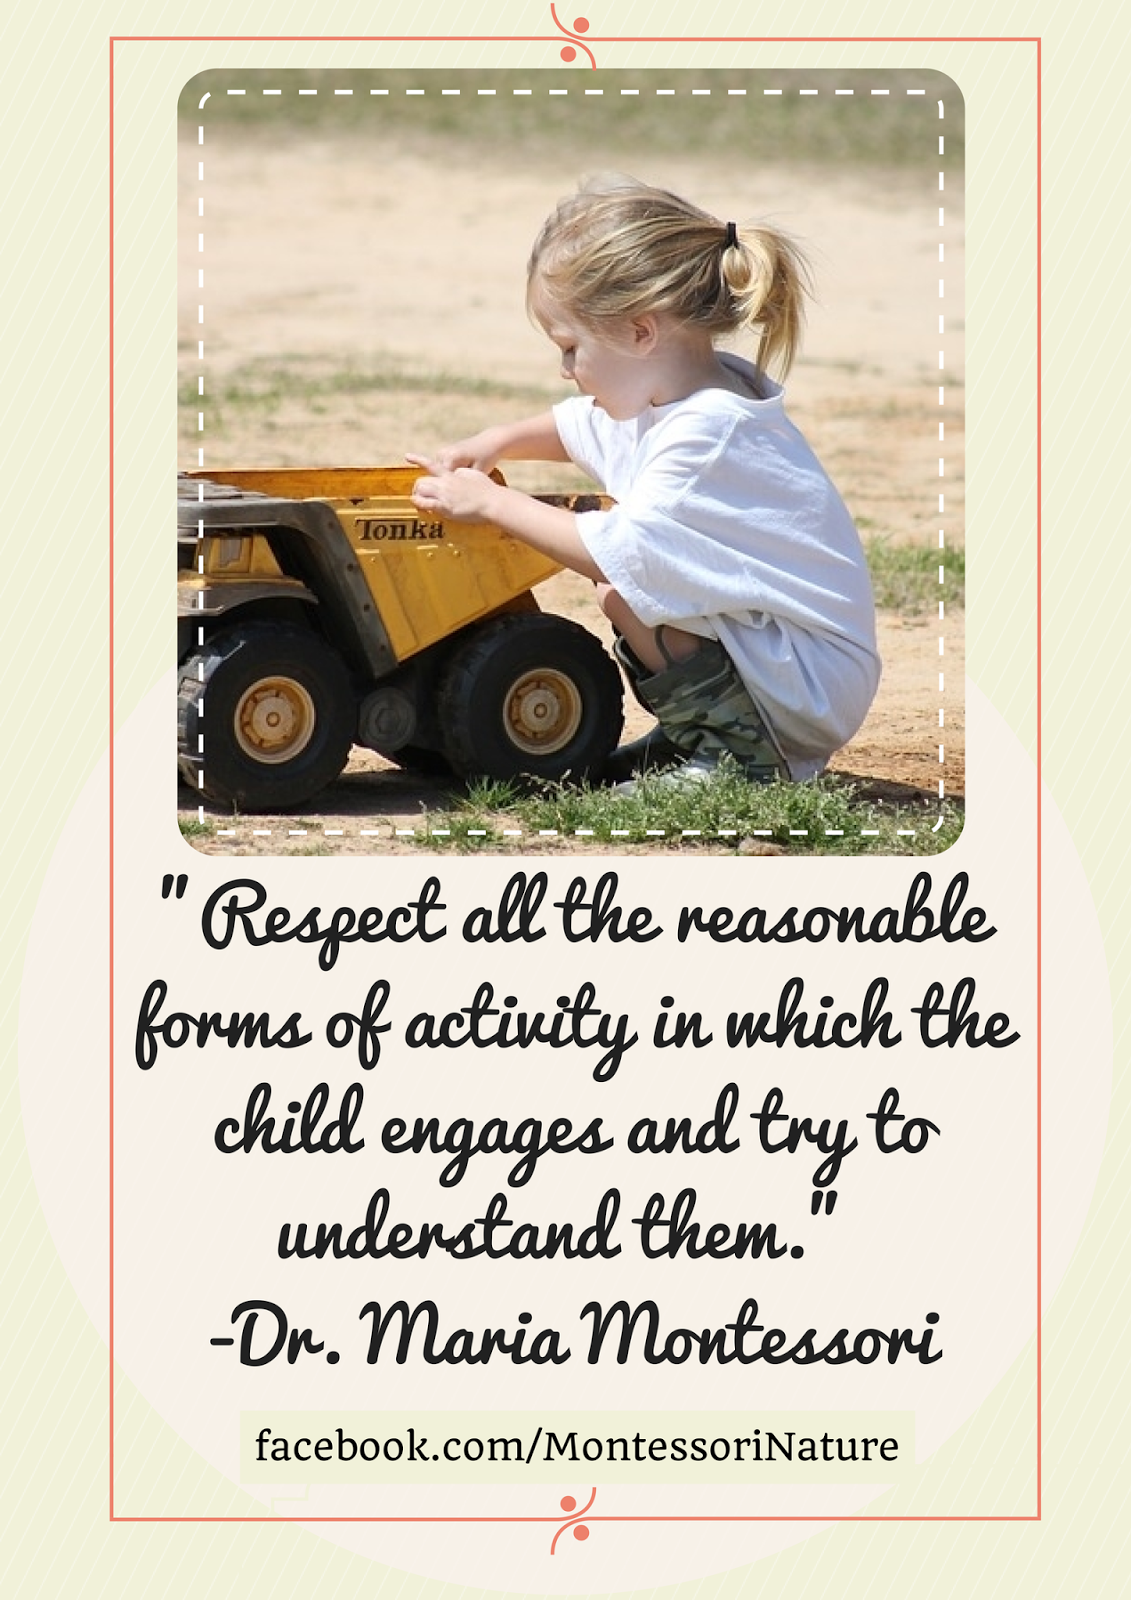 maria montessori quotes - maria montessori quotes from brainyquotecom - maria montessori the development of language is part of the development of the personality, for words are the natural means of expressing thoughts and establishing understanding between people.